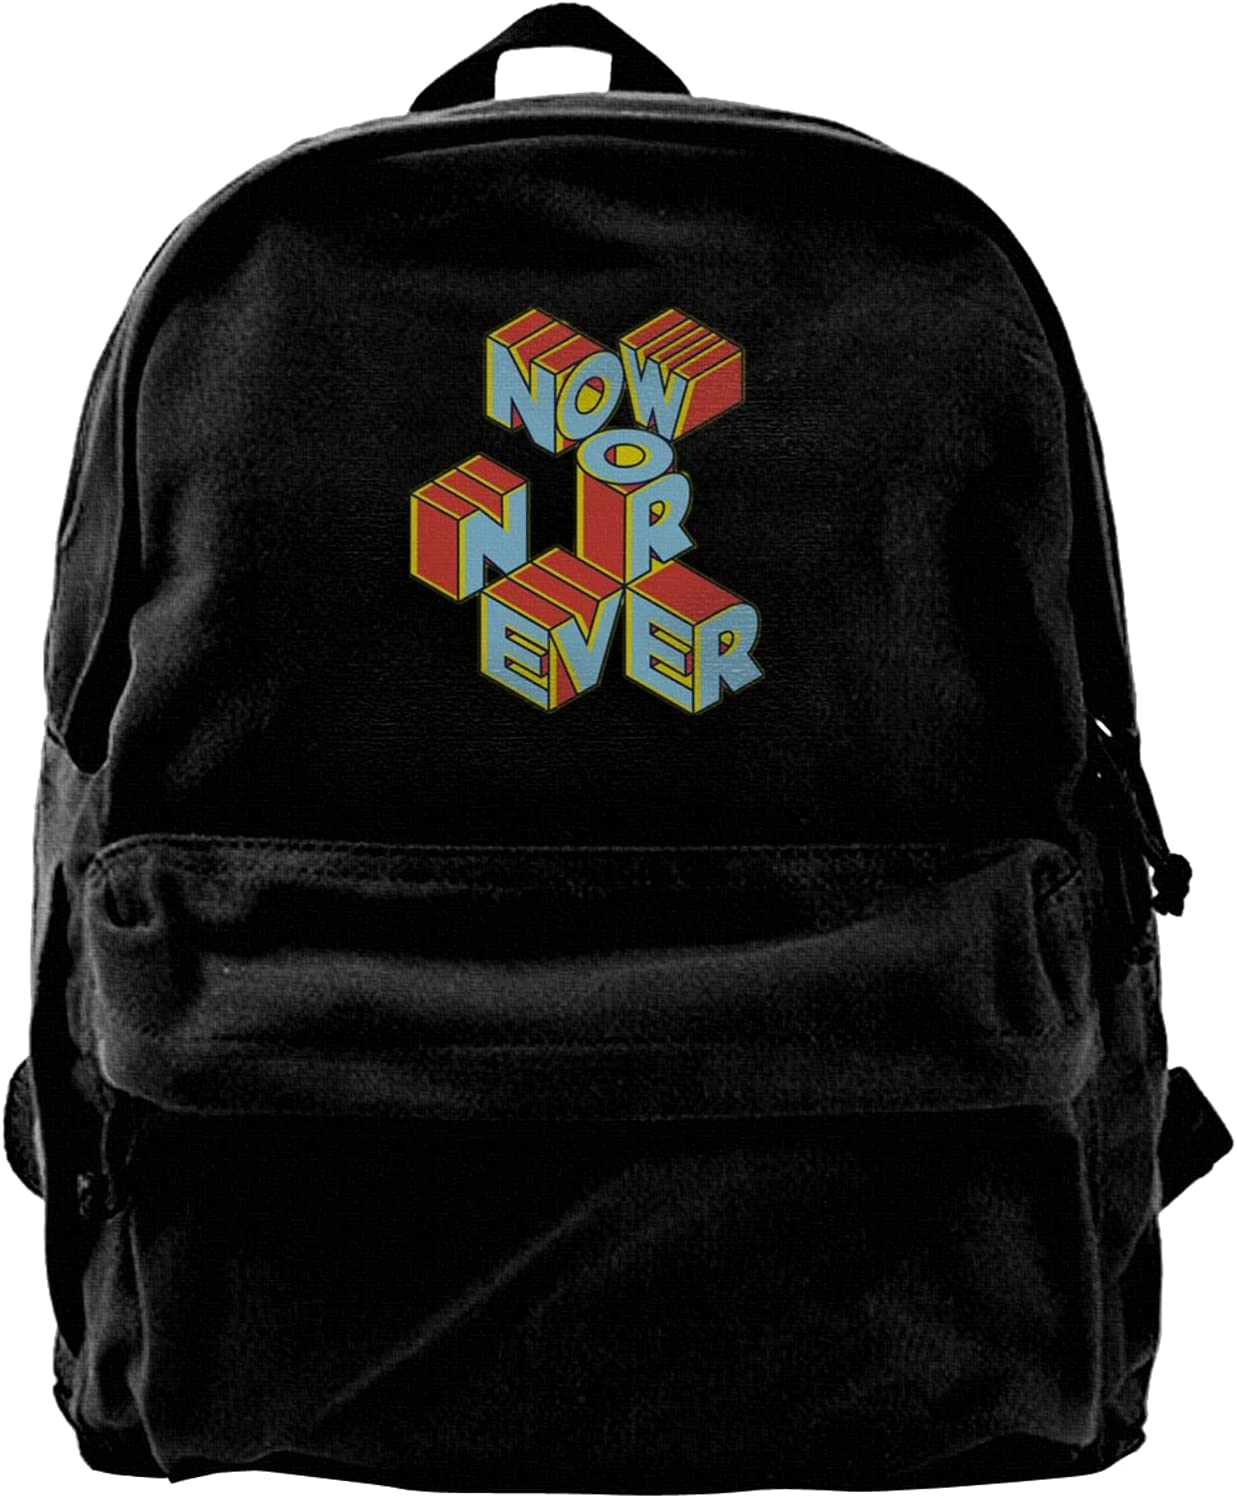 Now Or Never Canvas Sales for sale Backpacks Laptop Clearance SALE Limited time Bags Schoolba High-Capacity